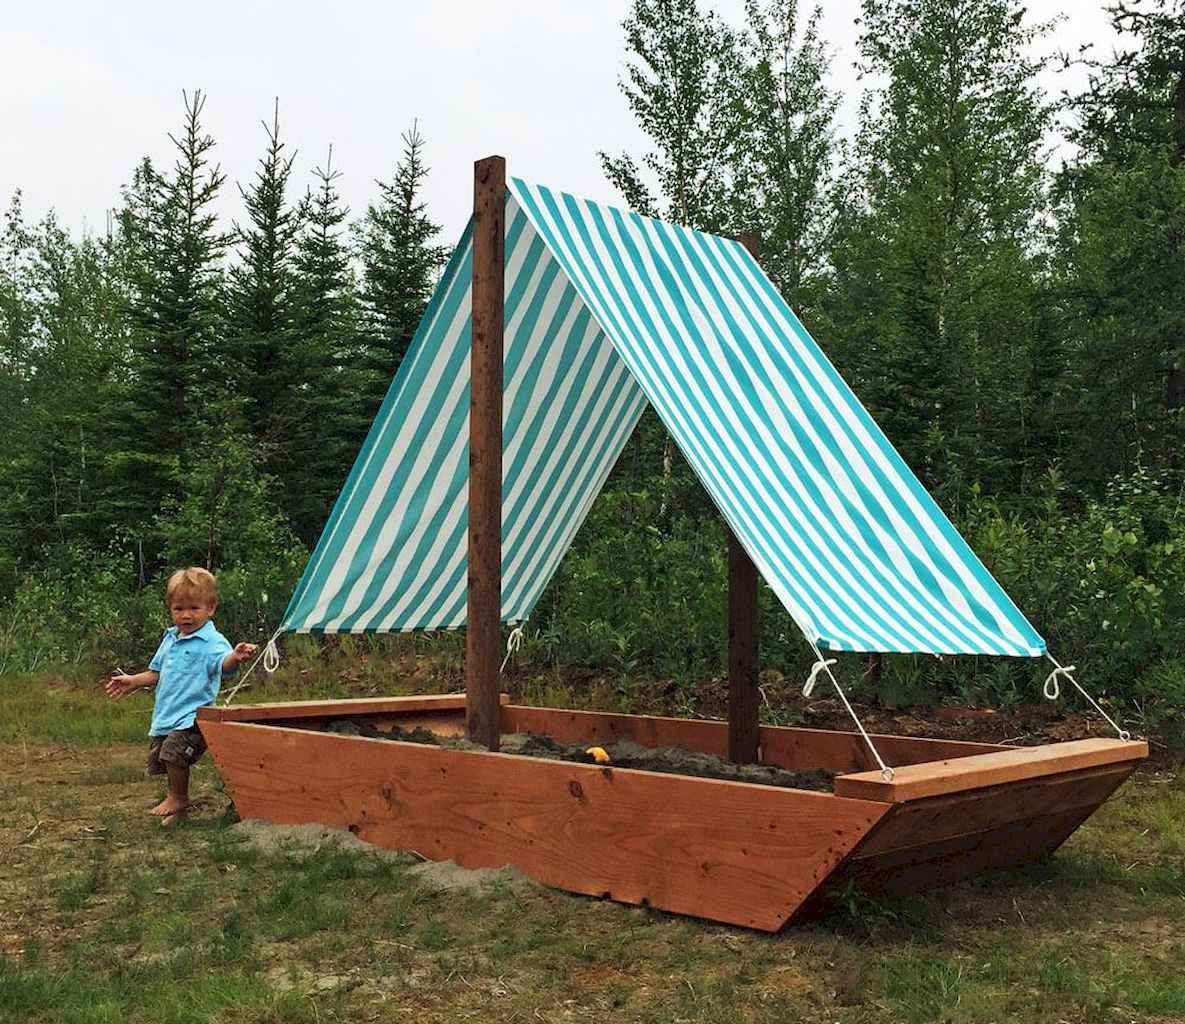 59 awesome backyard kids ideas for play outdoor summer